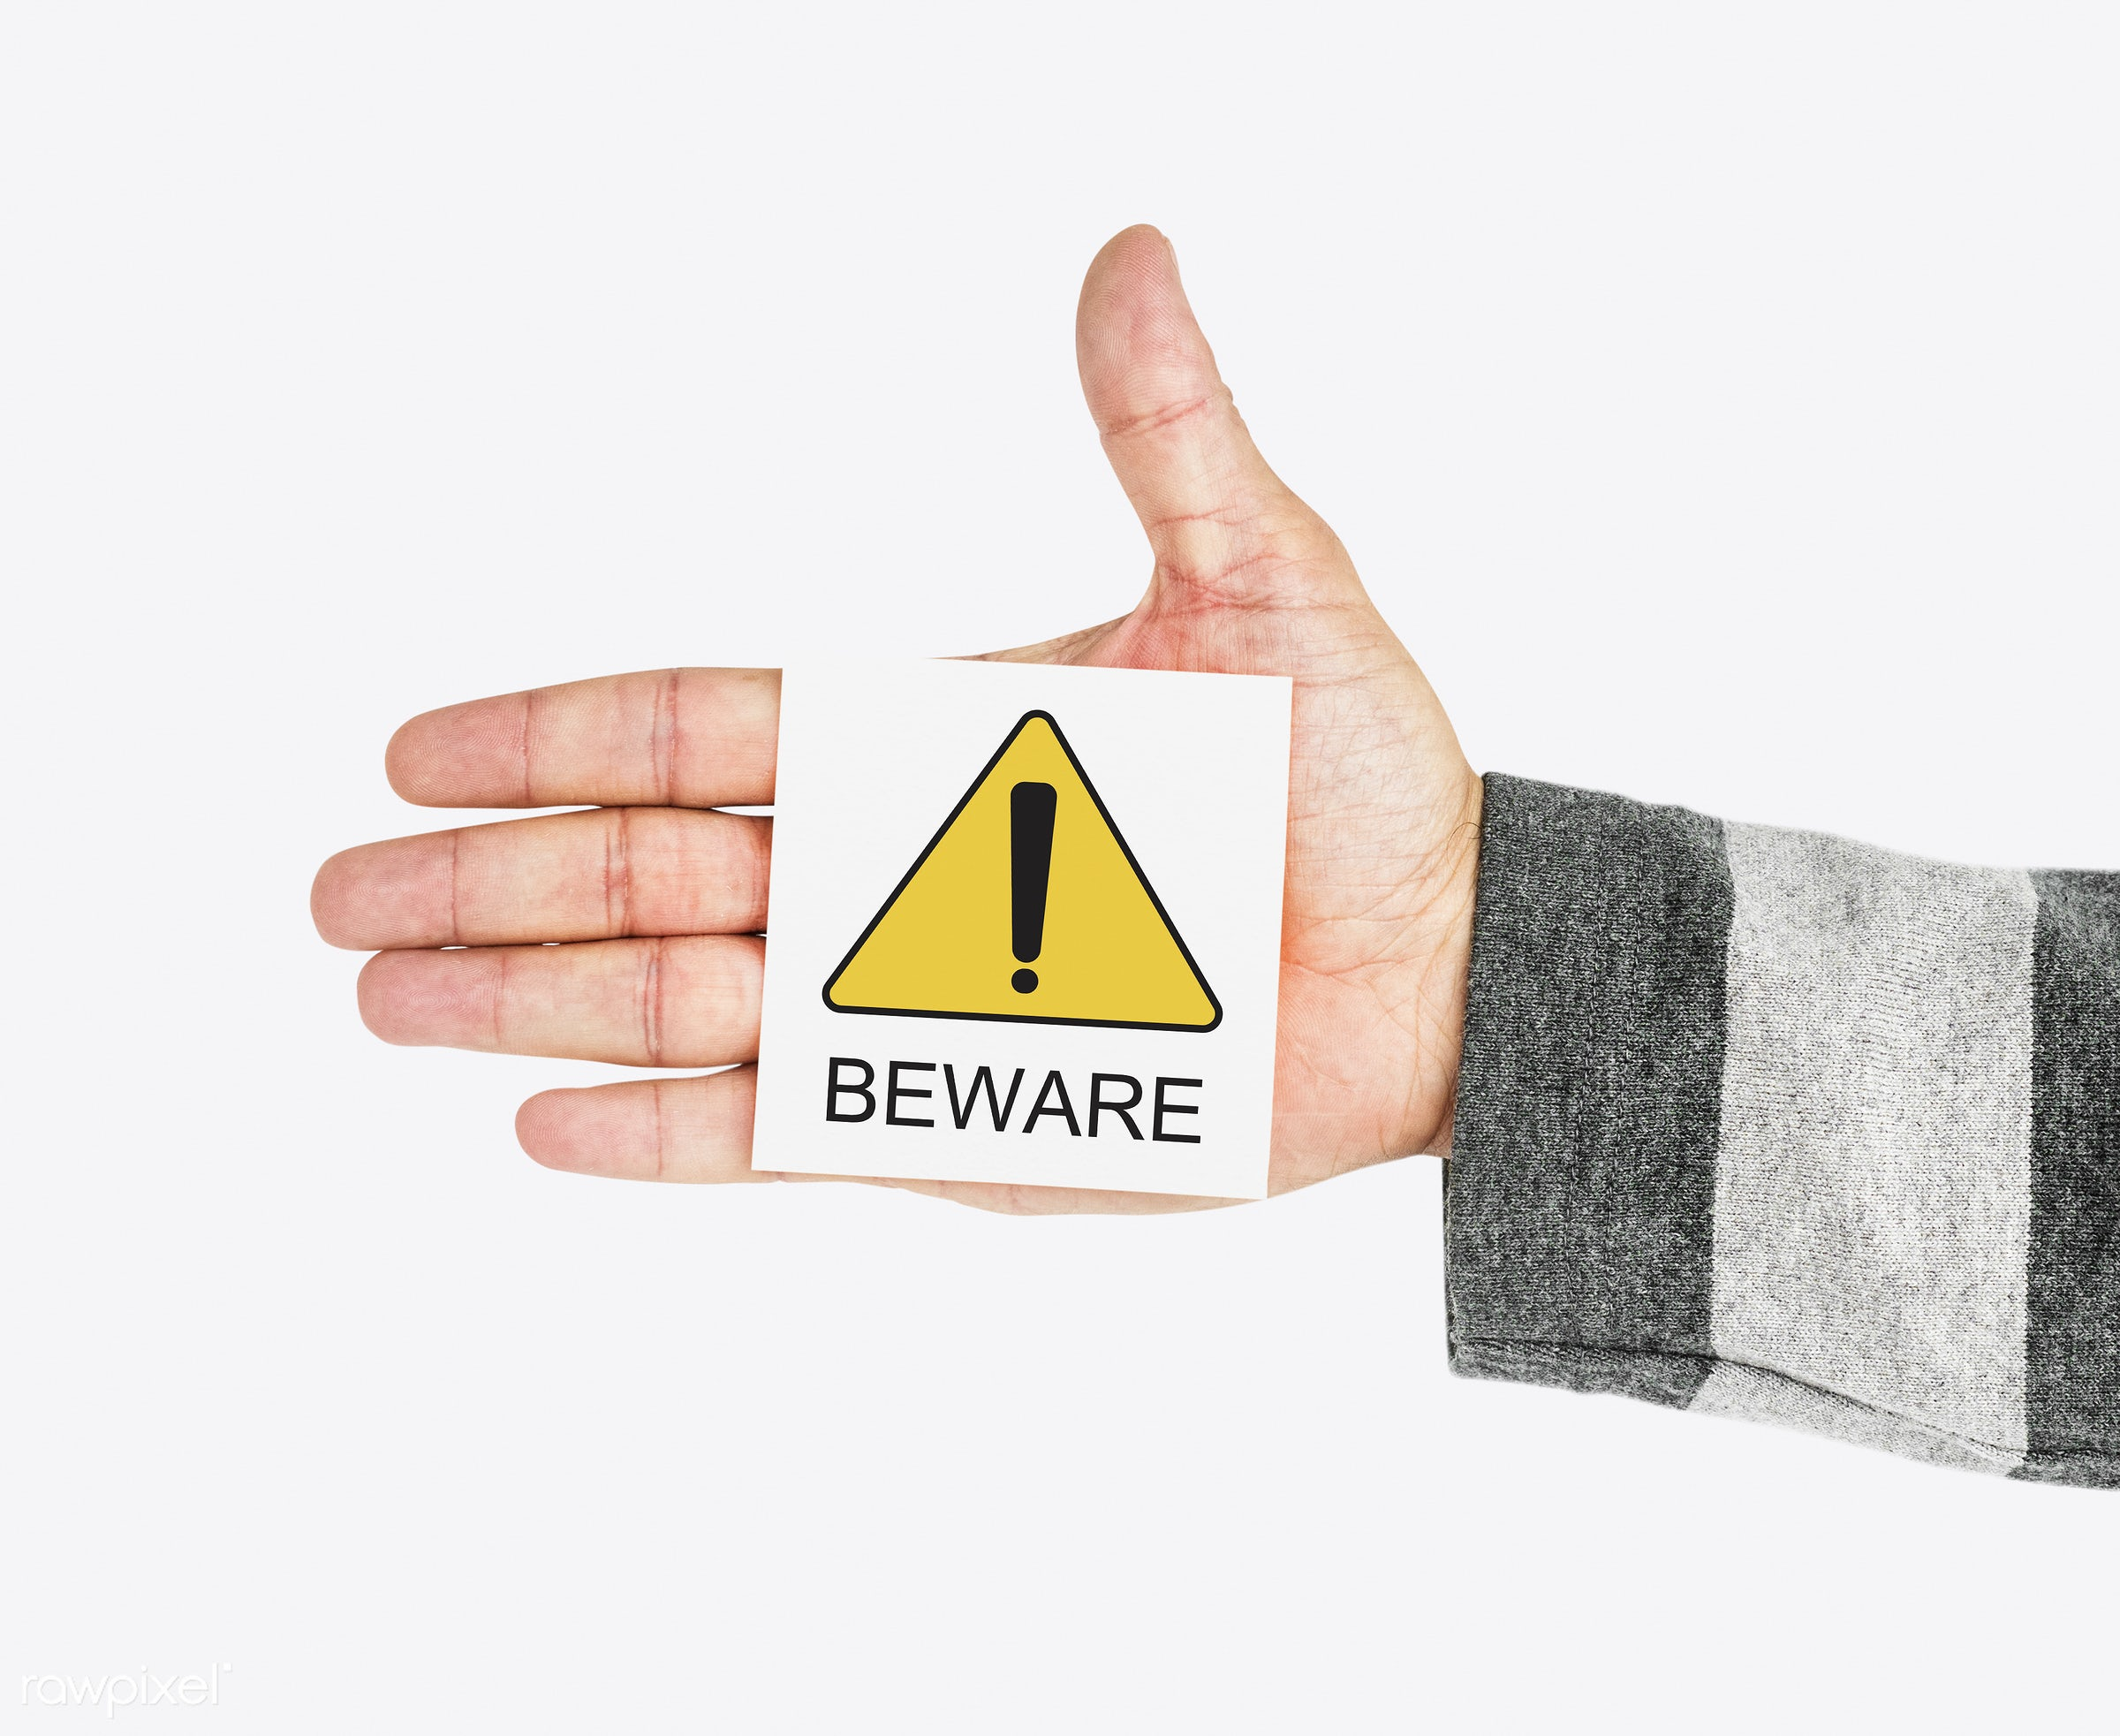 Beware note in hand - studio, expression, holding, show, placard, danger, solo, priority, isolated, information, alert, hold...